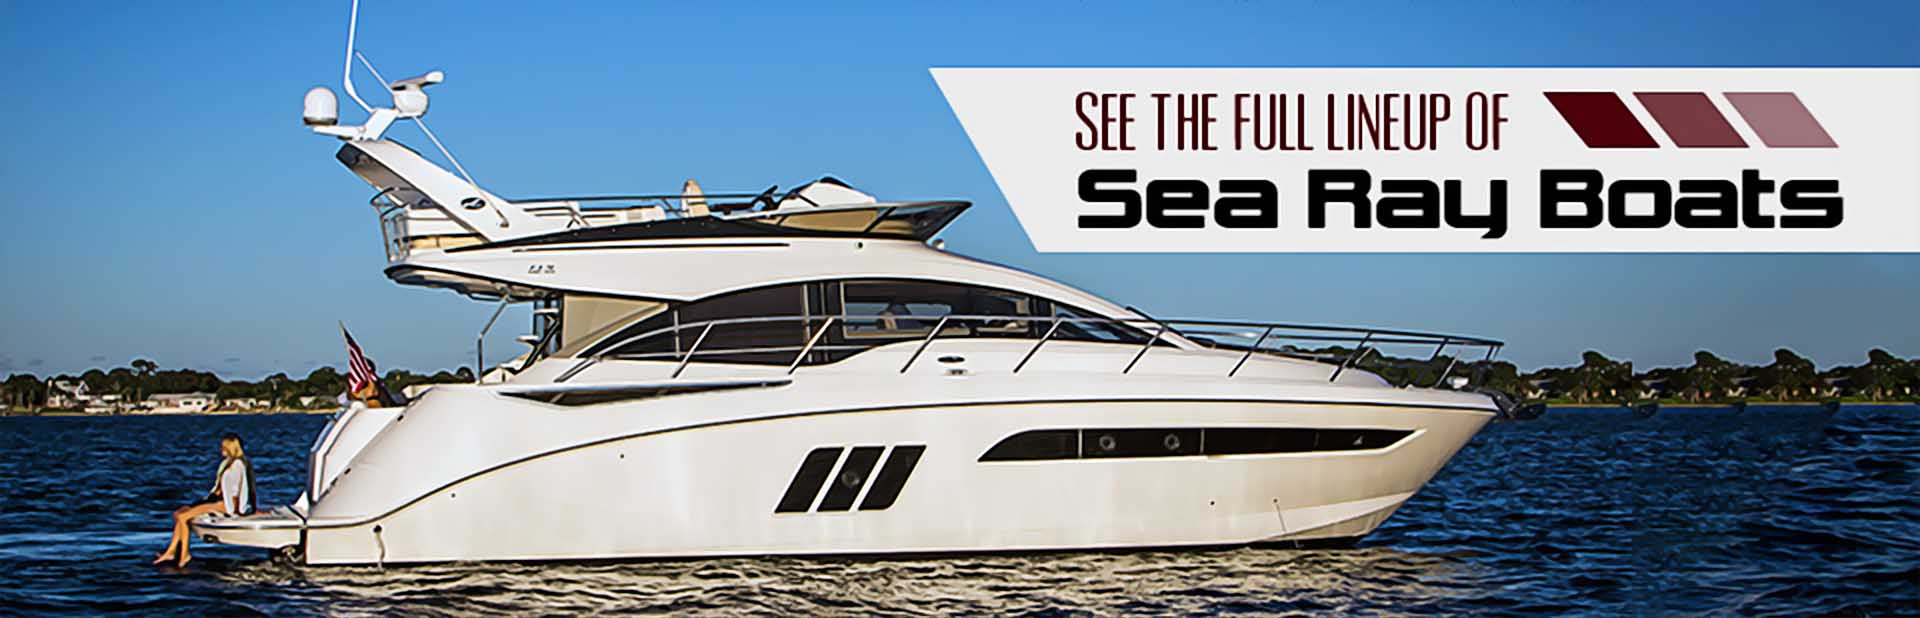 Sea Ray Boats: Click here to view the full lineup.